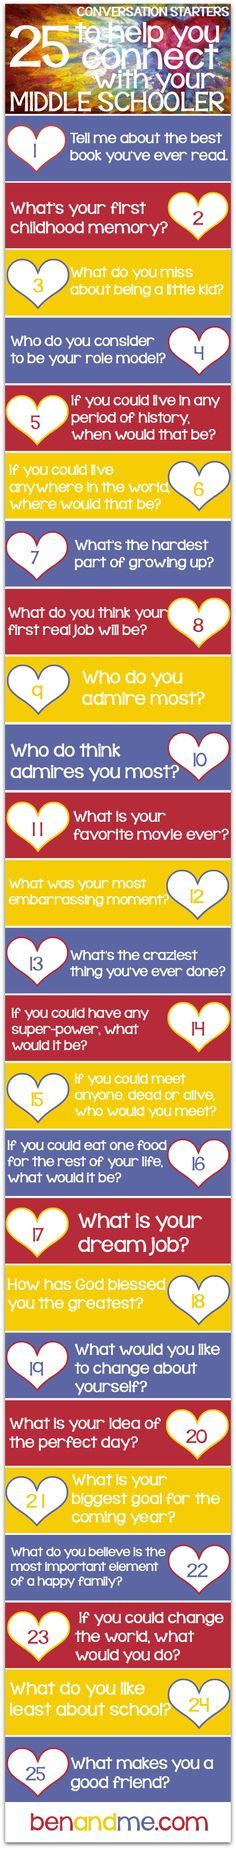 FREE Middle School Conversation Starters Printable